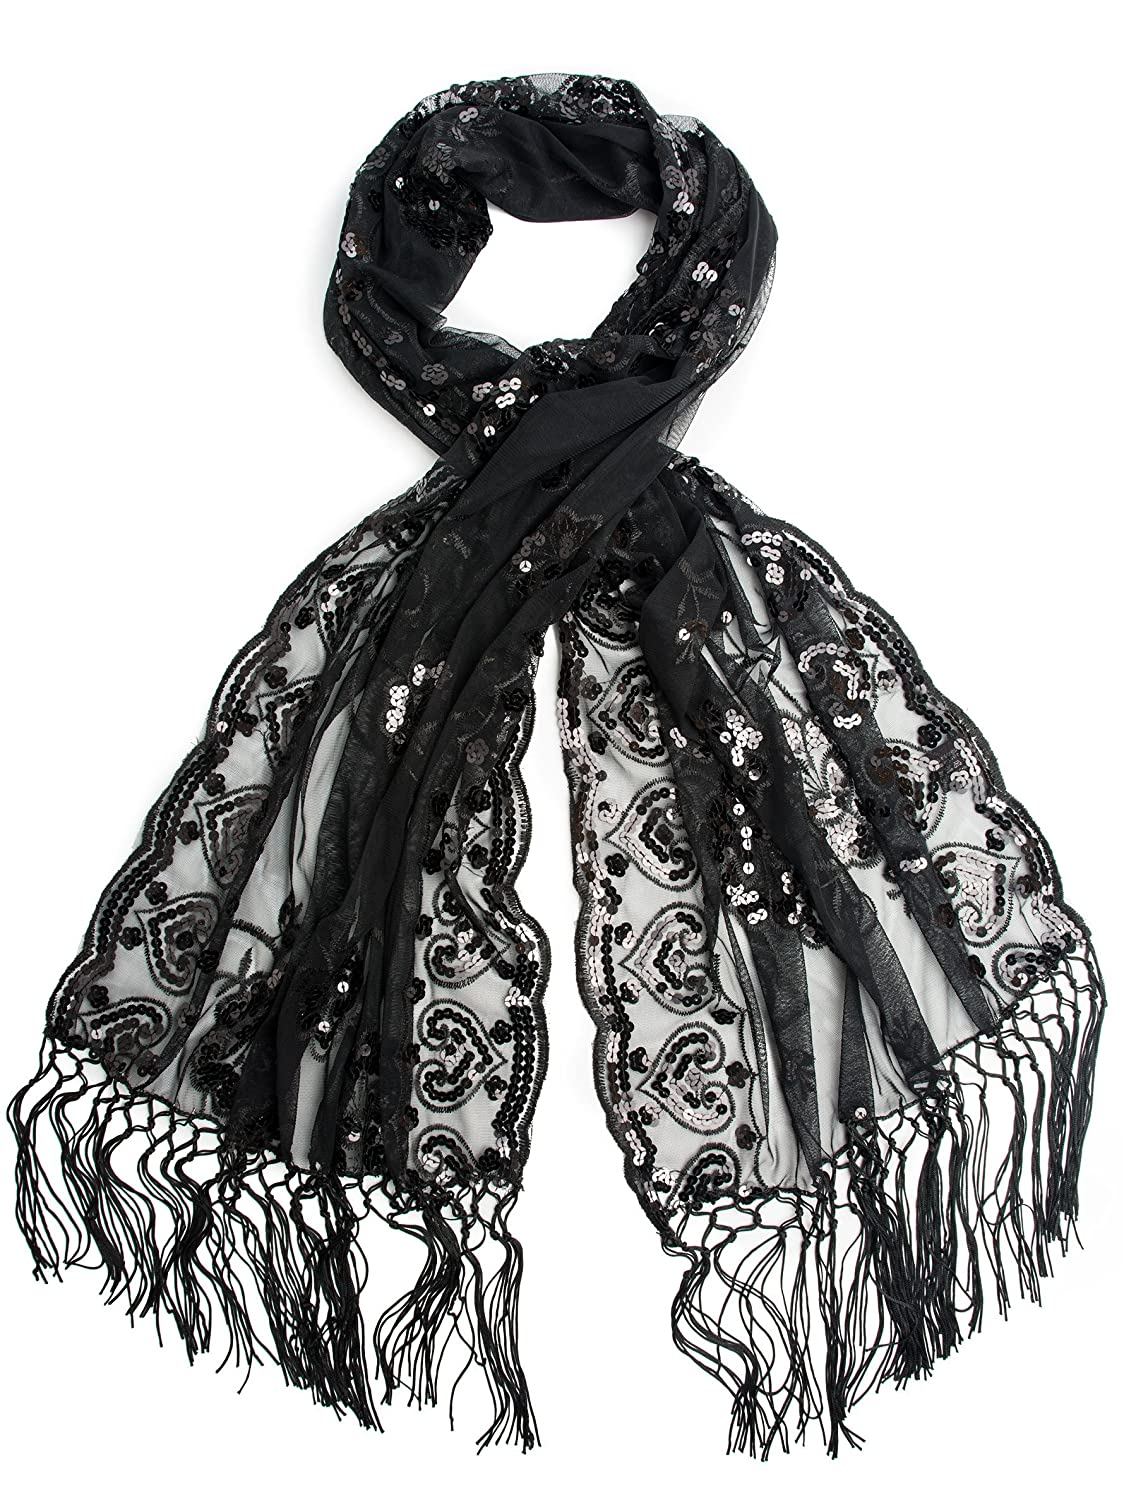 5 Essential Victorian Costume Accessories Black Madison Shawl Long Fringe Sequin Evening Wrap $14.95 AT vintagedancer.com